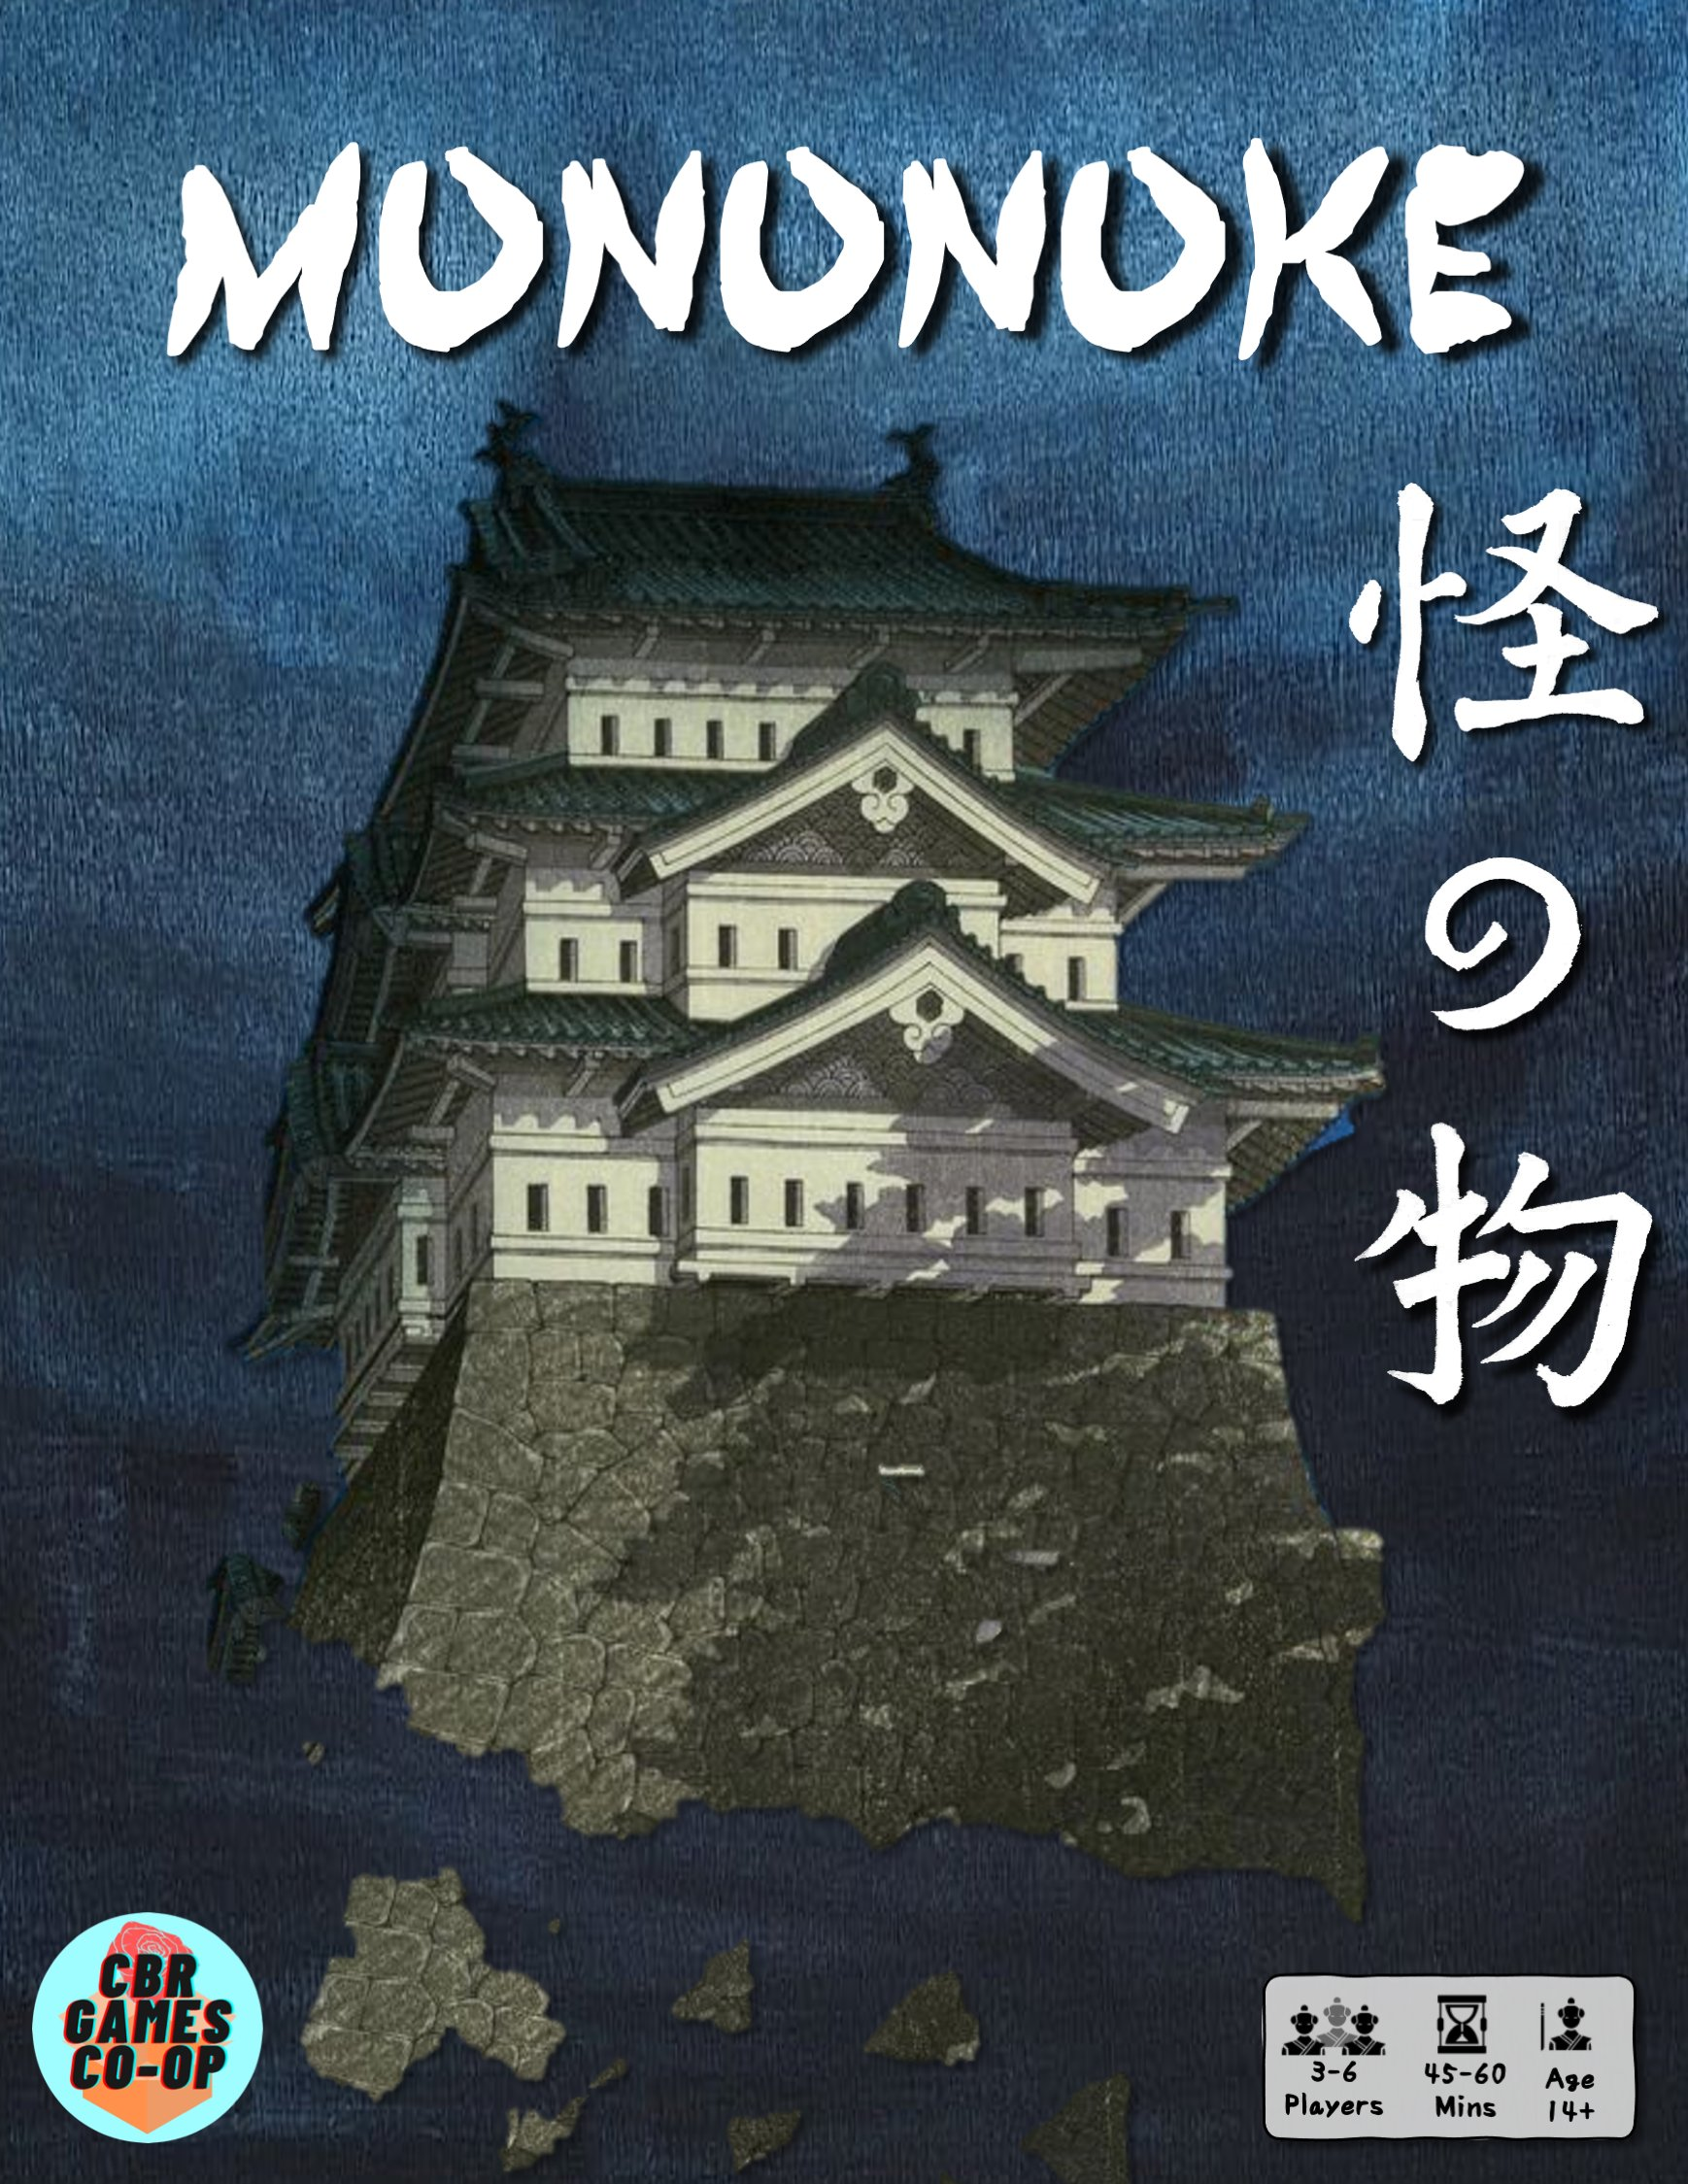 Design Blog: Mononoke